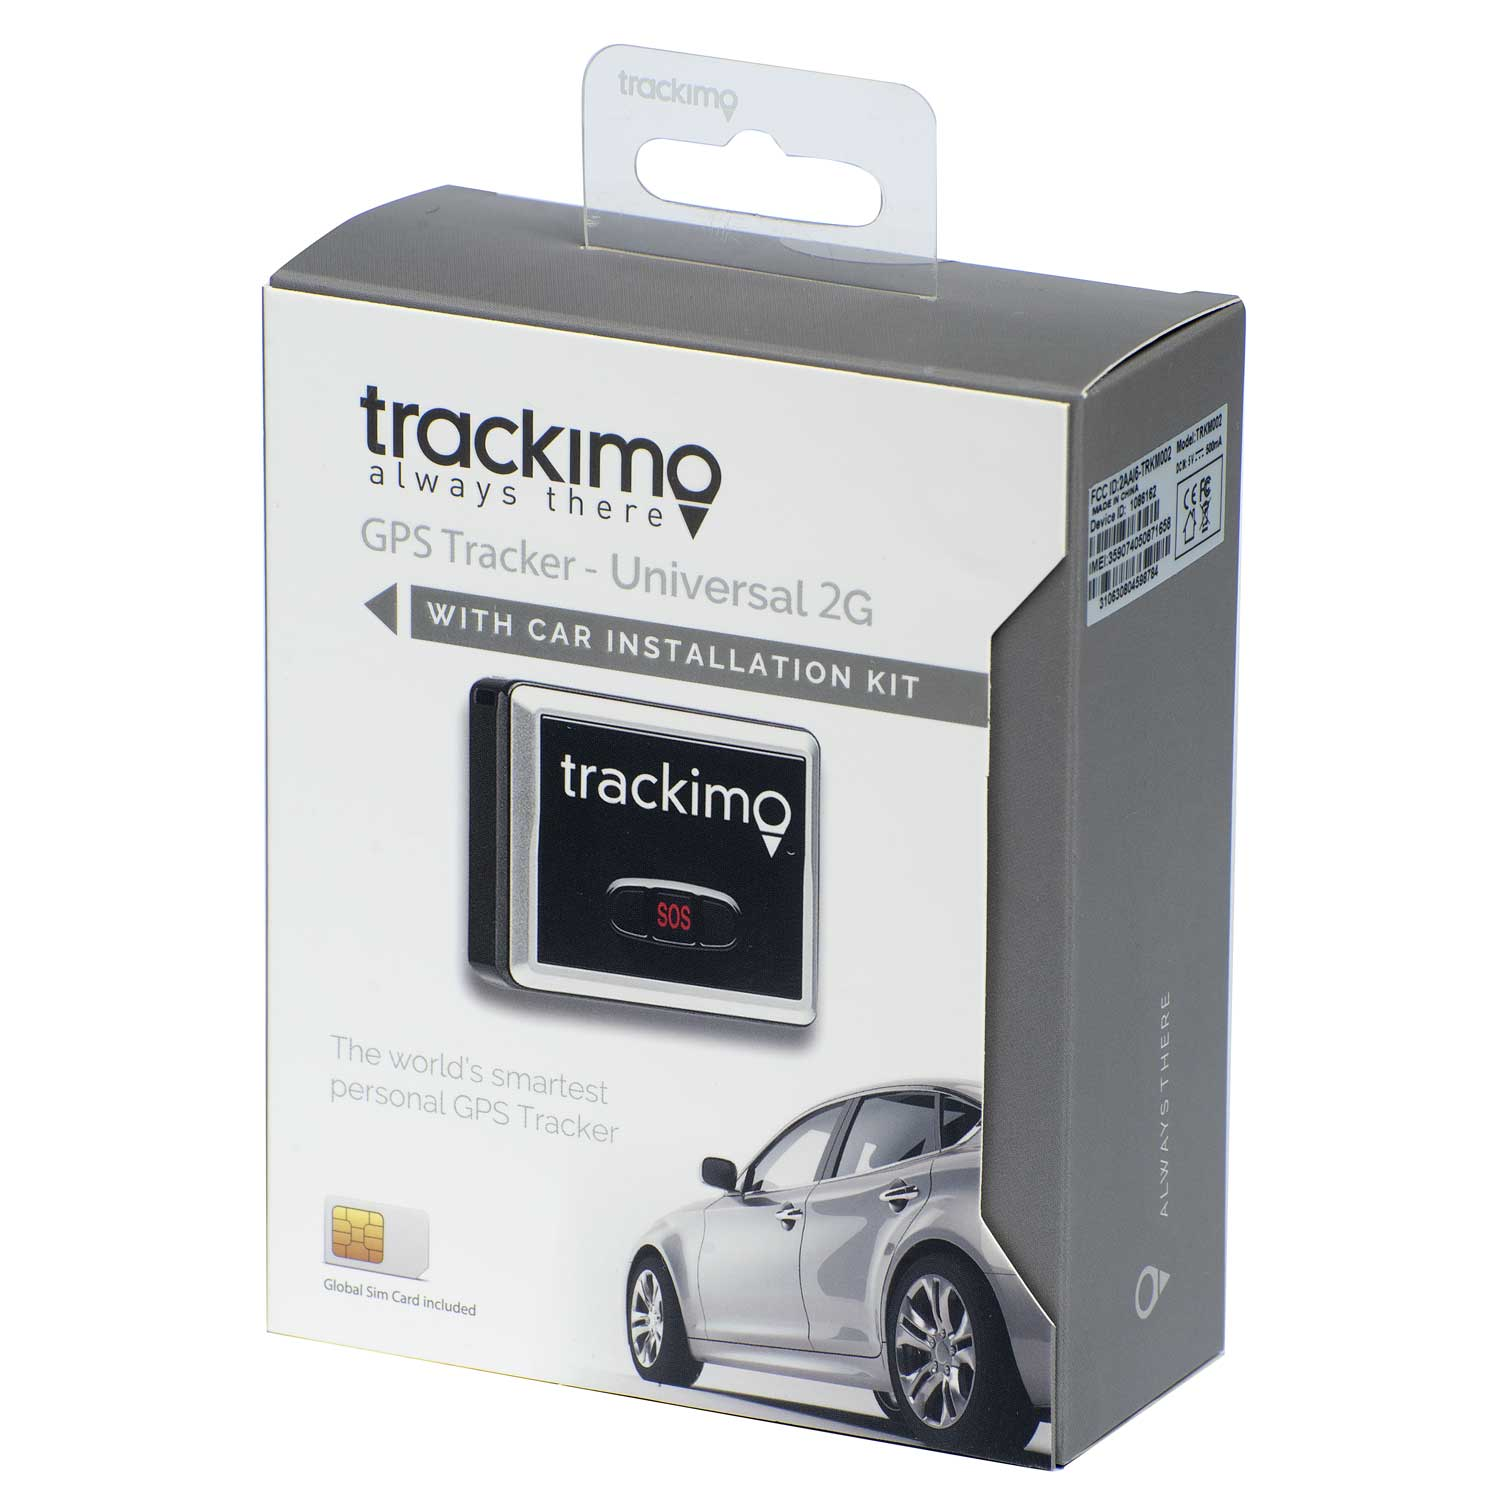 Packaging front